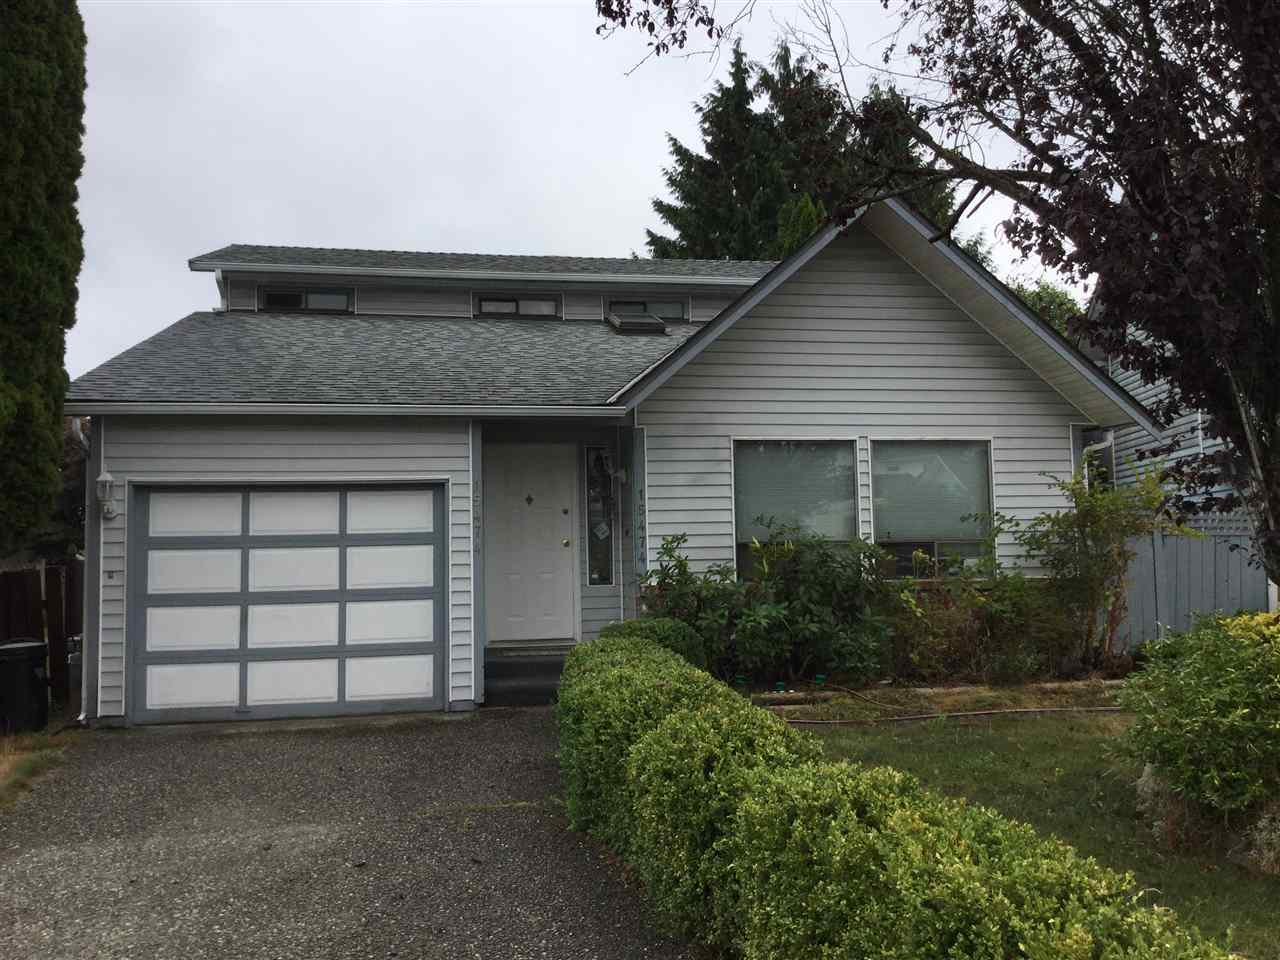 90 surrey bc in vancouver british columbia for sale - House For Sale At 15474 90 Ave Surrey British Columbia